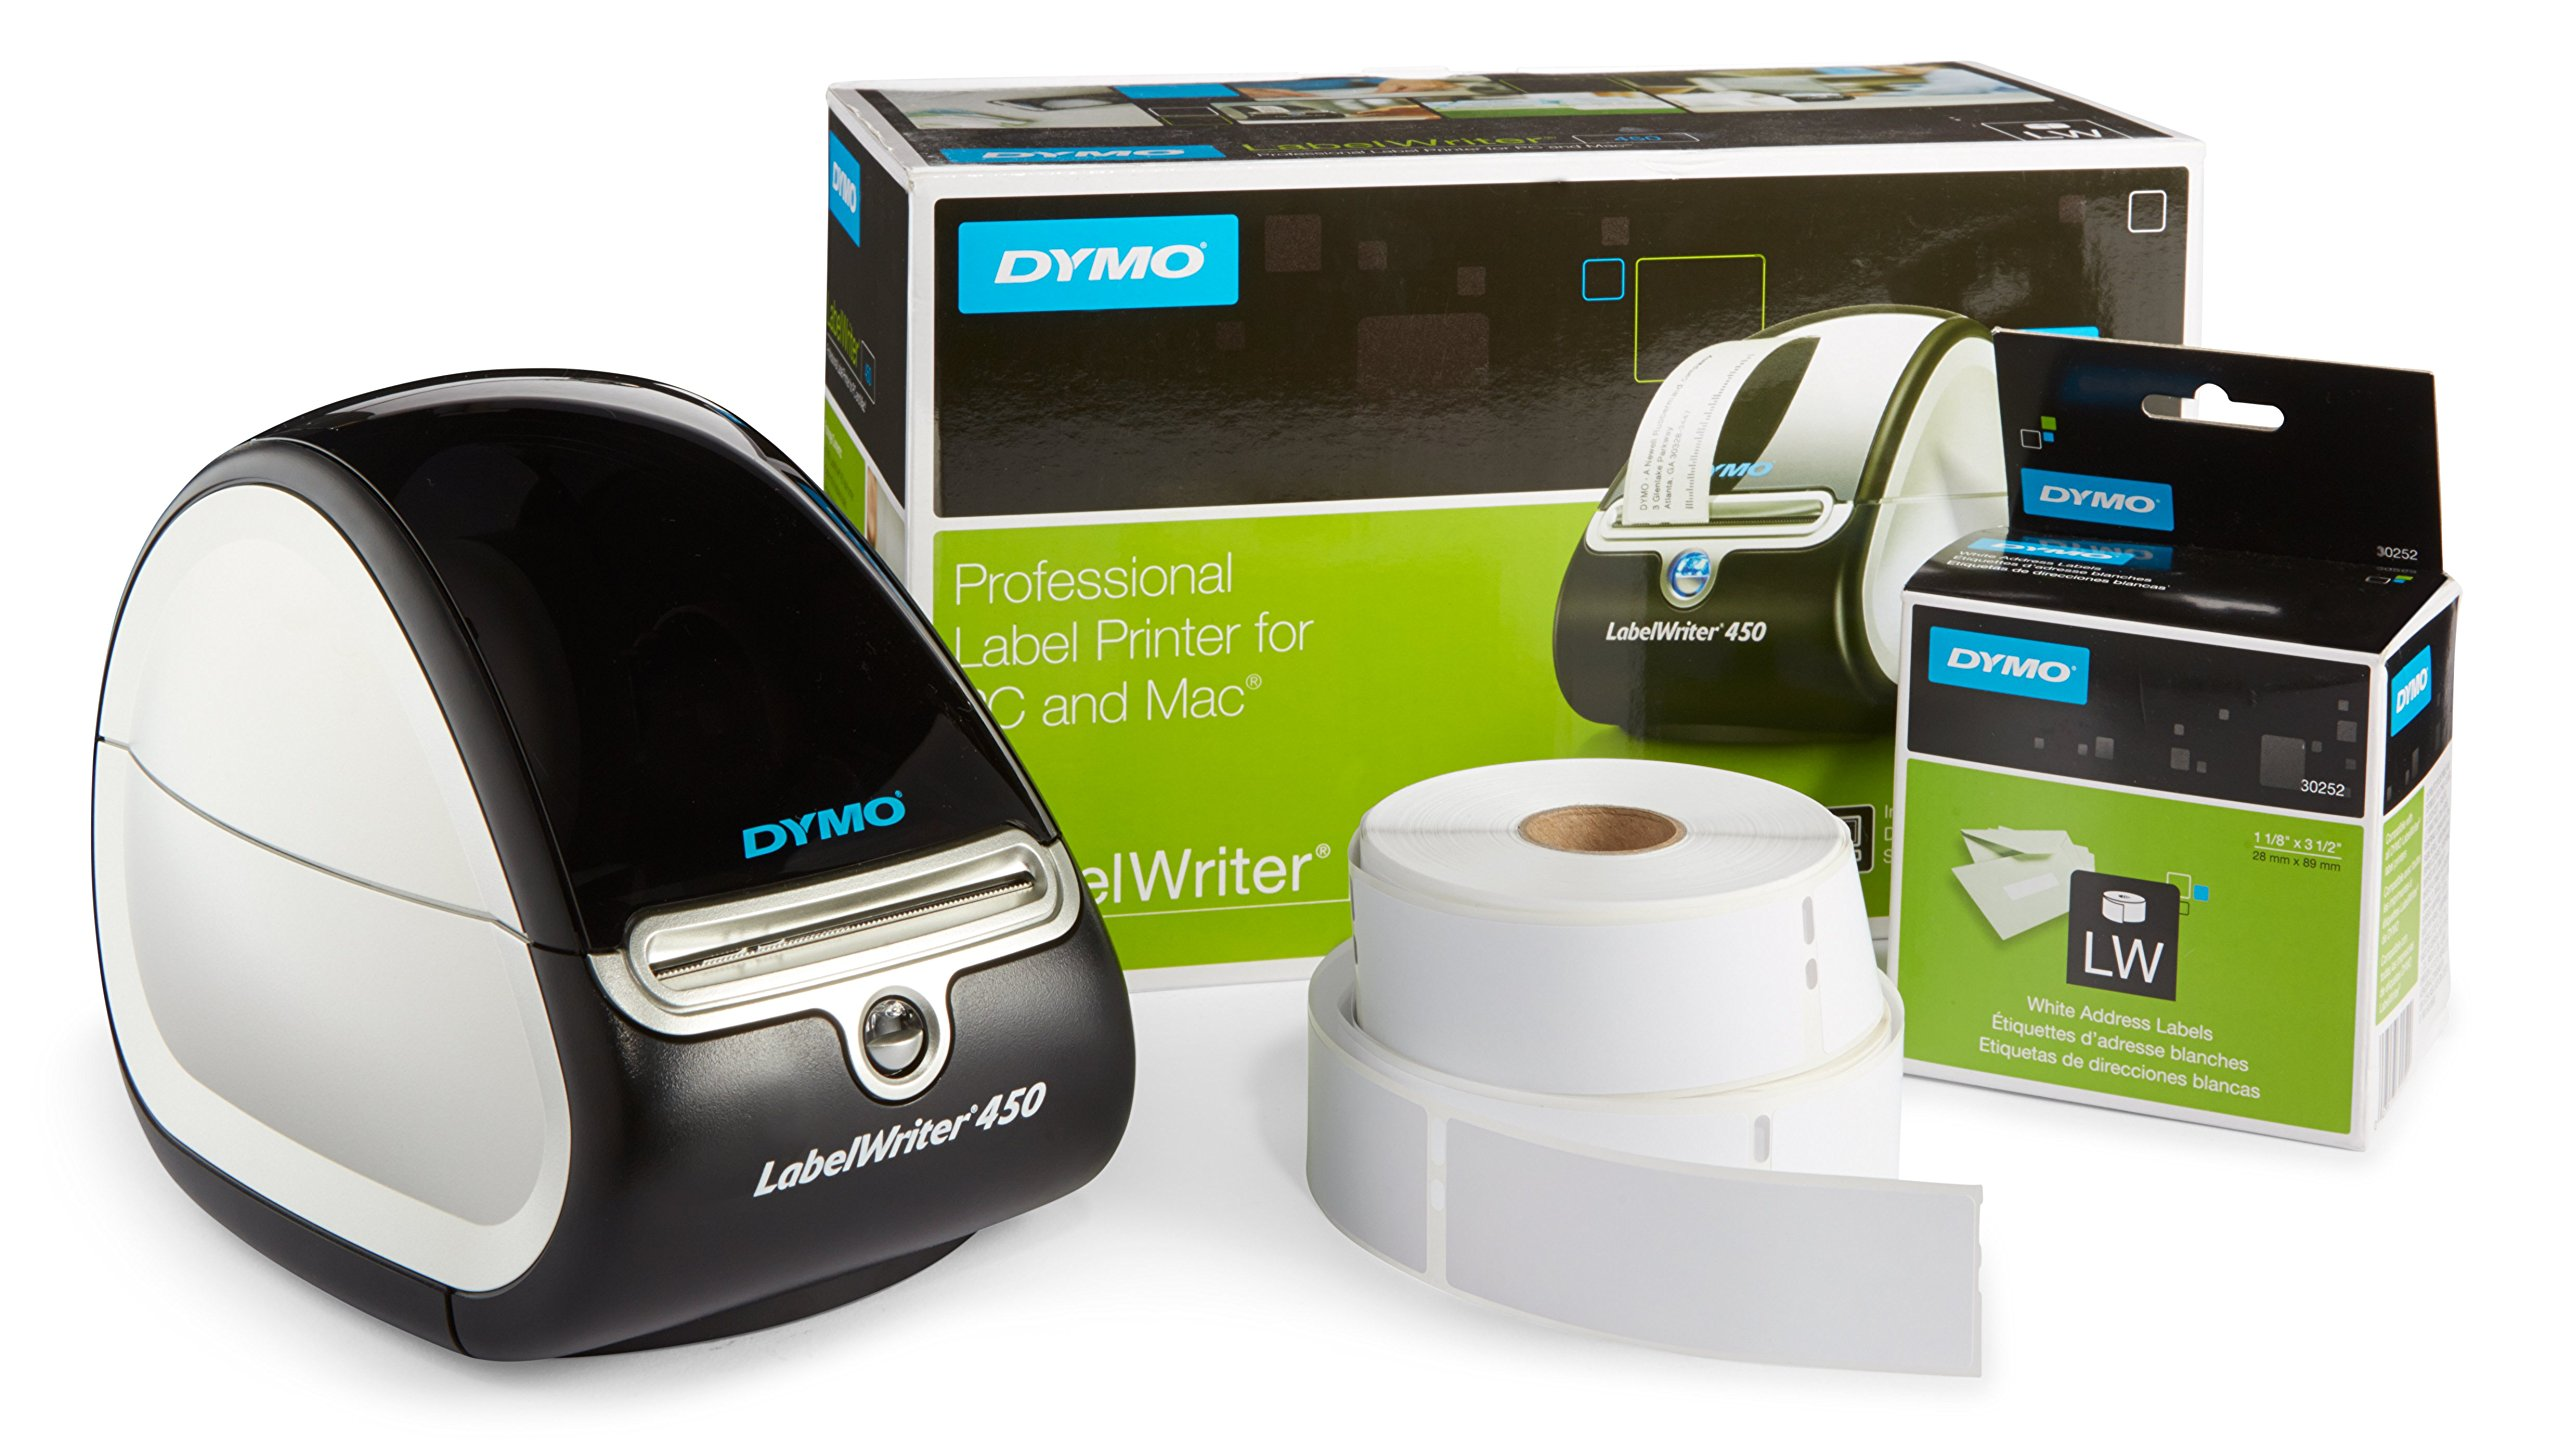 DYMO LabelWriter 450 Thermal Label Printer with 1 extra roll of 350 White Mailing Address Labels